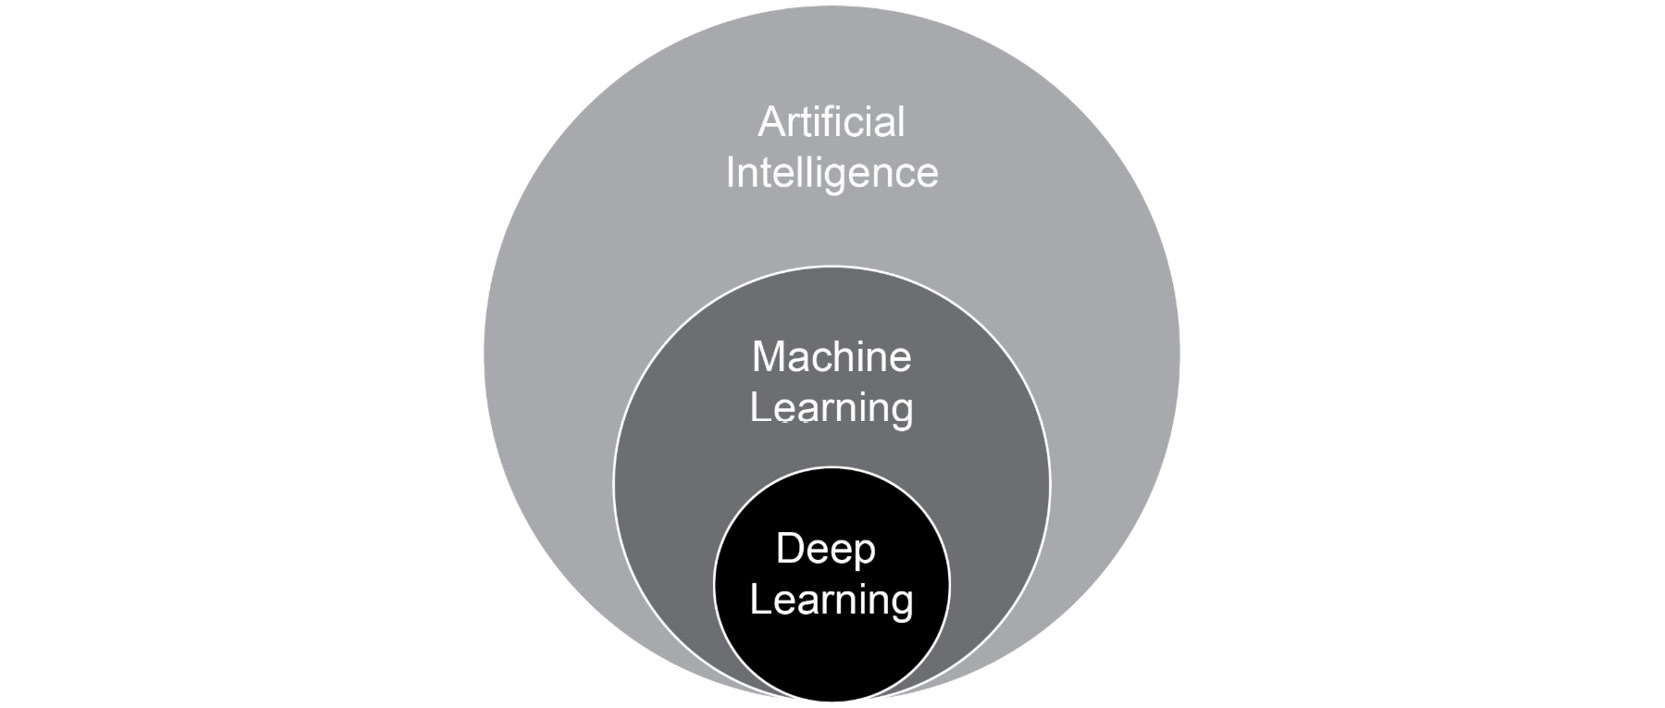 Figure 1.1: Relationship between AI, ML, and DL